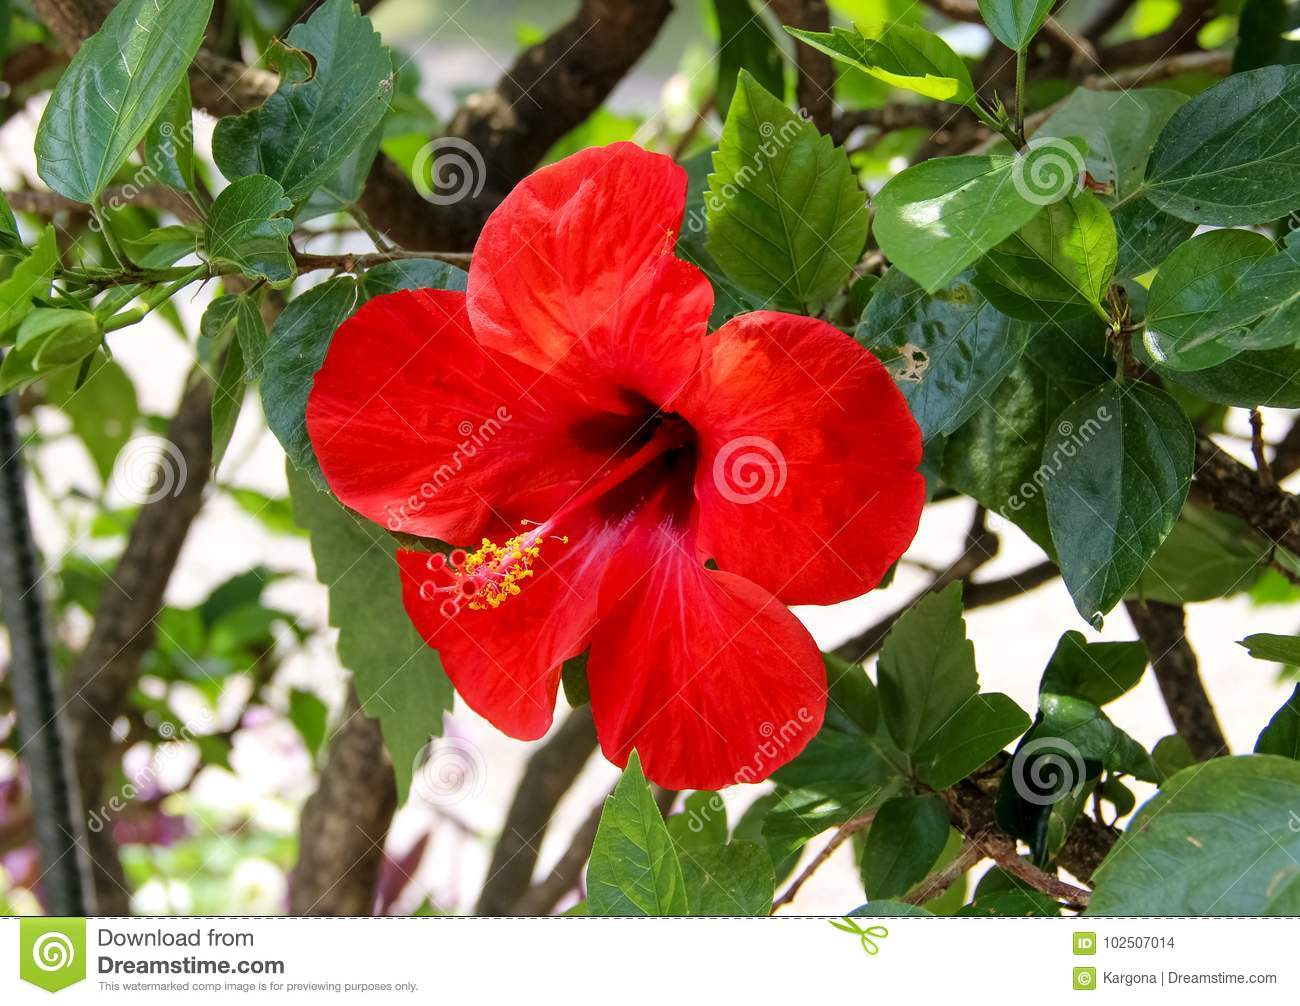 A red chinese hibiscus flower stock photo image of petal flower download a red chinese hibiscus flower stock photo image of petal flower 102507014 izmirmasajfo